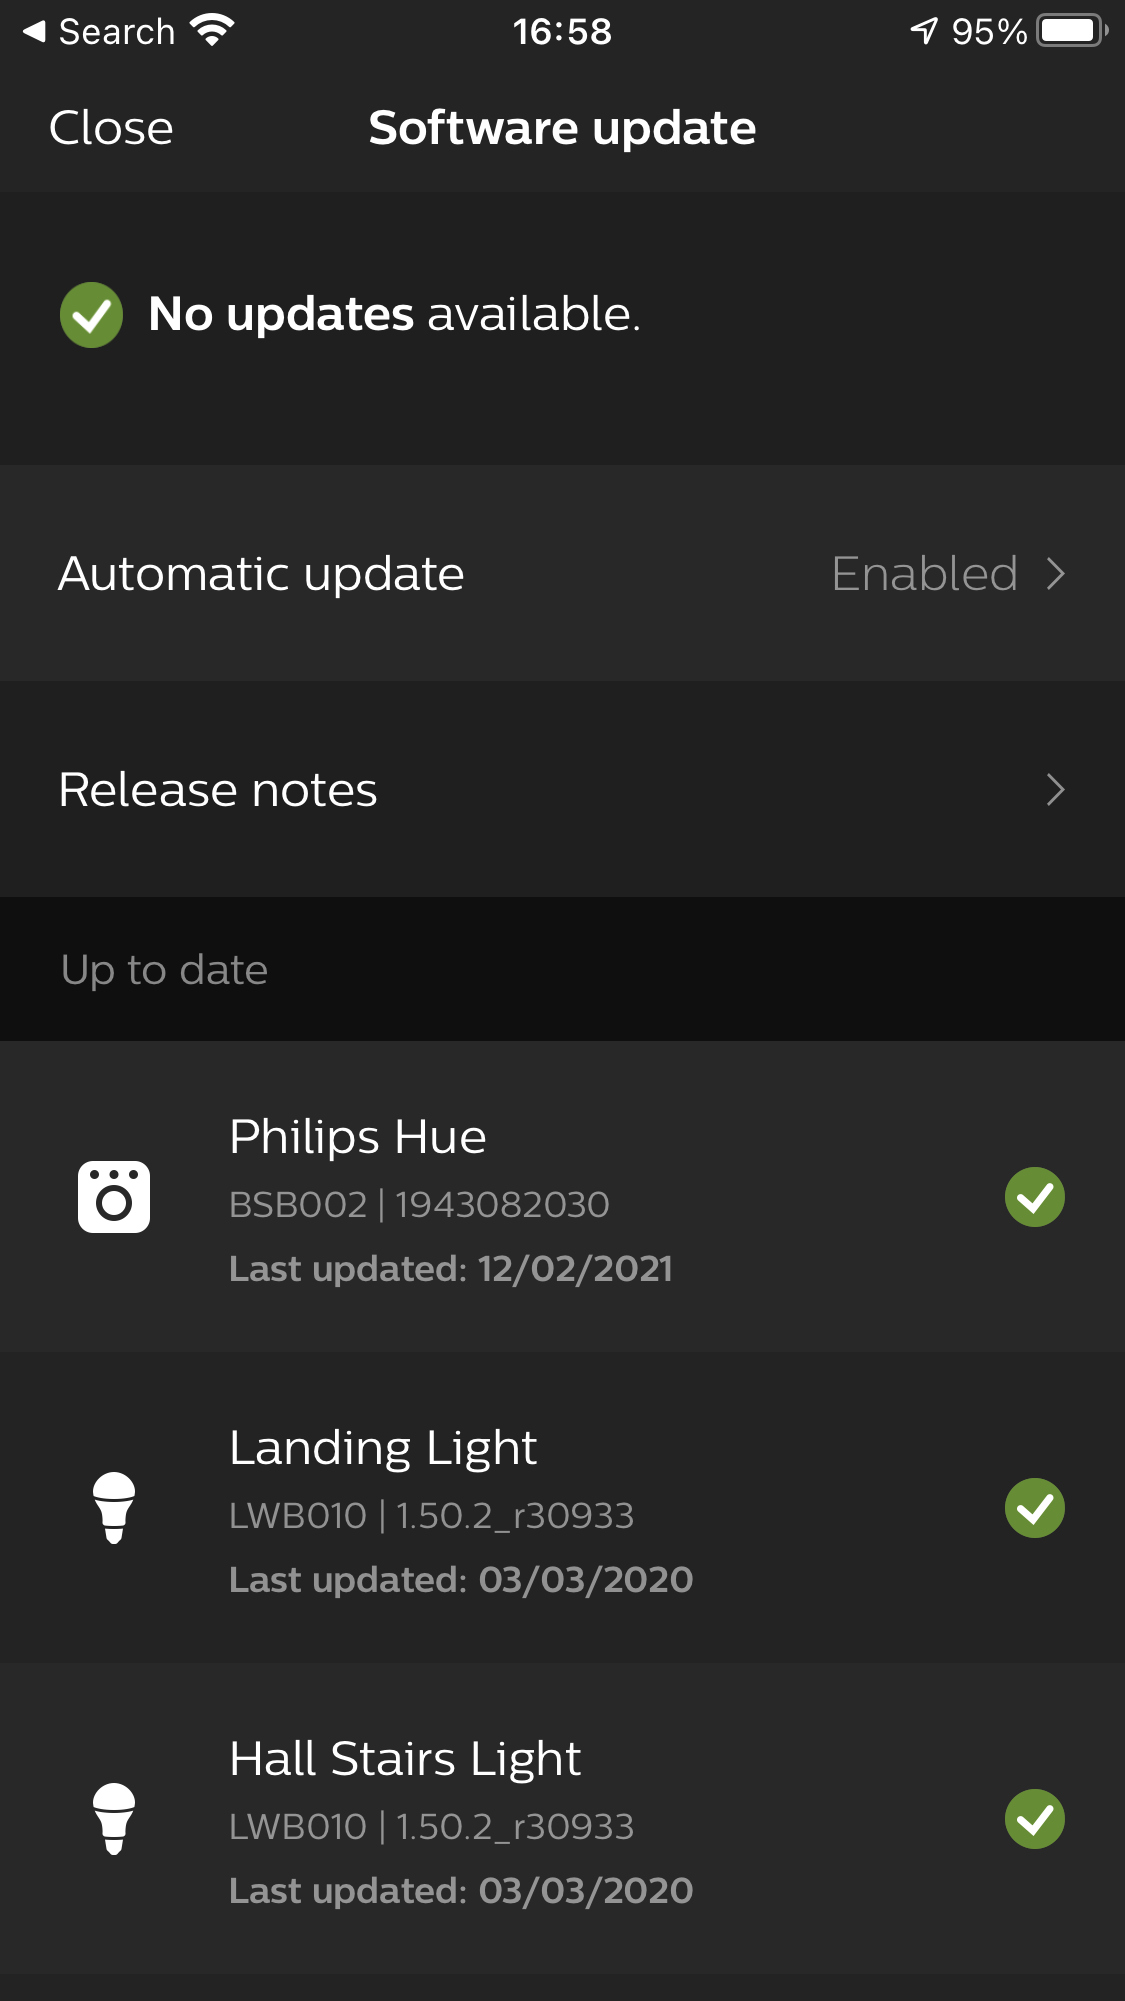 Software update in the Philips Hue app (Hue bulbs)